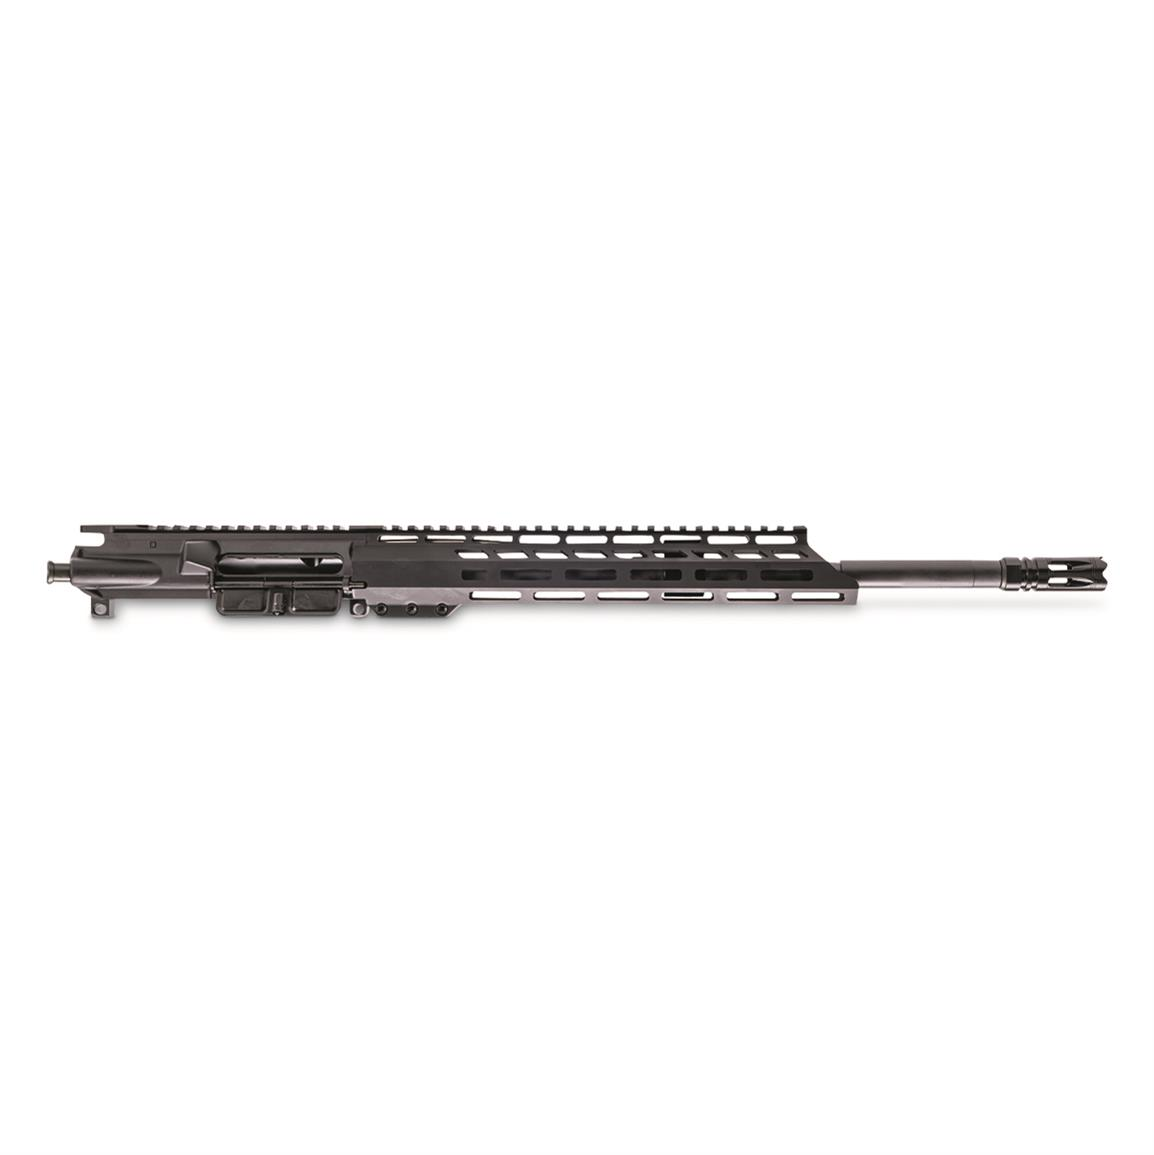 "Anderson AM-15 5.56/.223 Upper Receiver Less BCG/Charge Handle, 16"" BBL, Mid Gas, M-LOK"